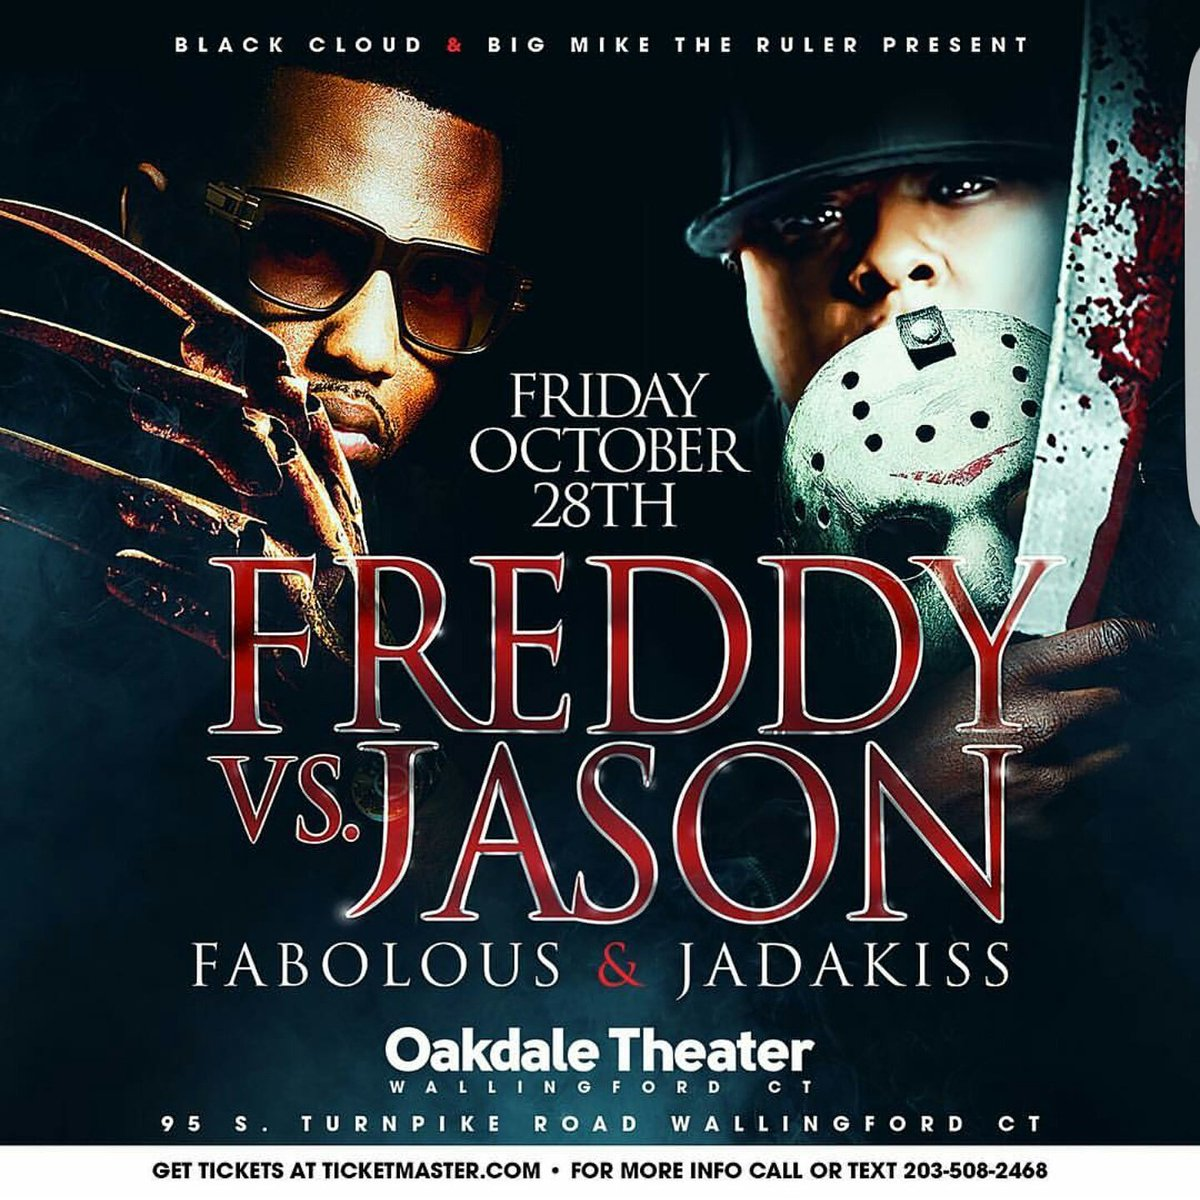 This concert is gona be insane!!!  @myfabolouslife n @Therealkiss at the Oakdale Theater in Wallingford Ct Oct 28 https://t.co/gZmTU4KQQU